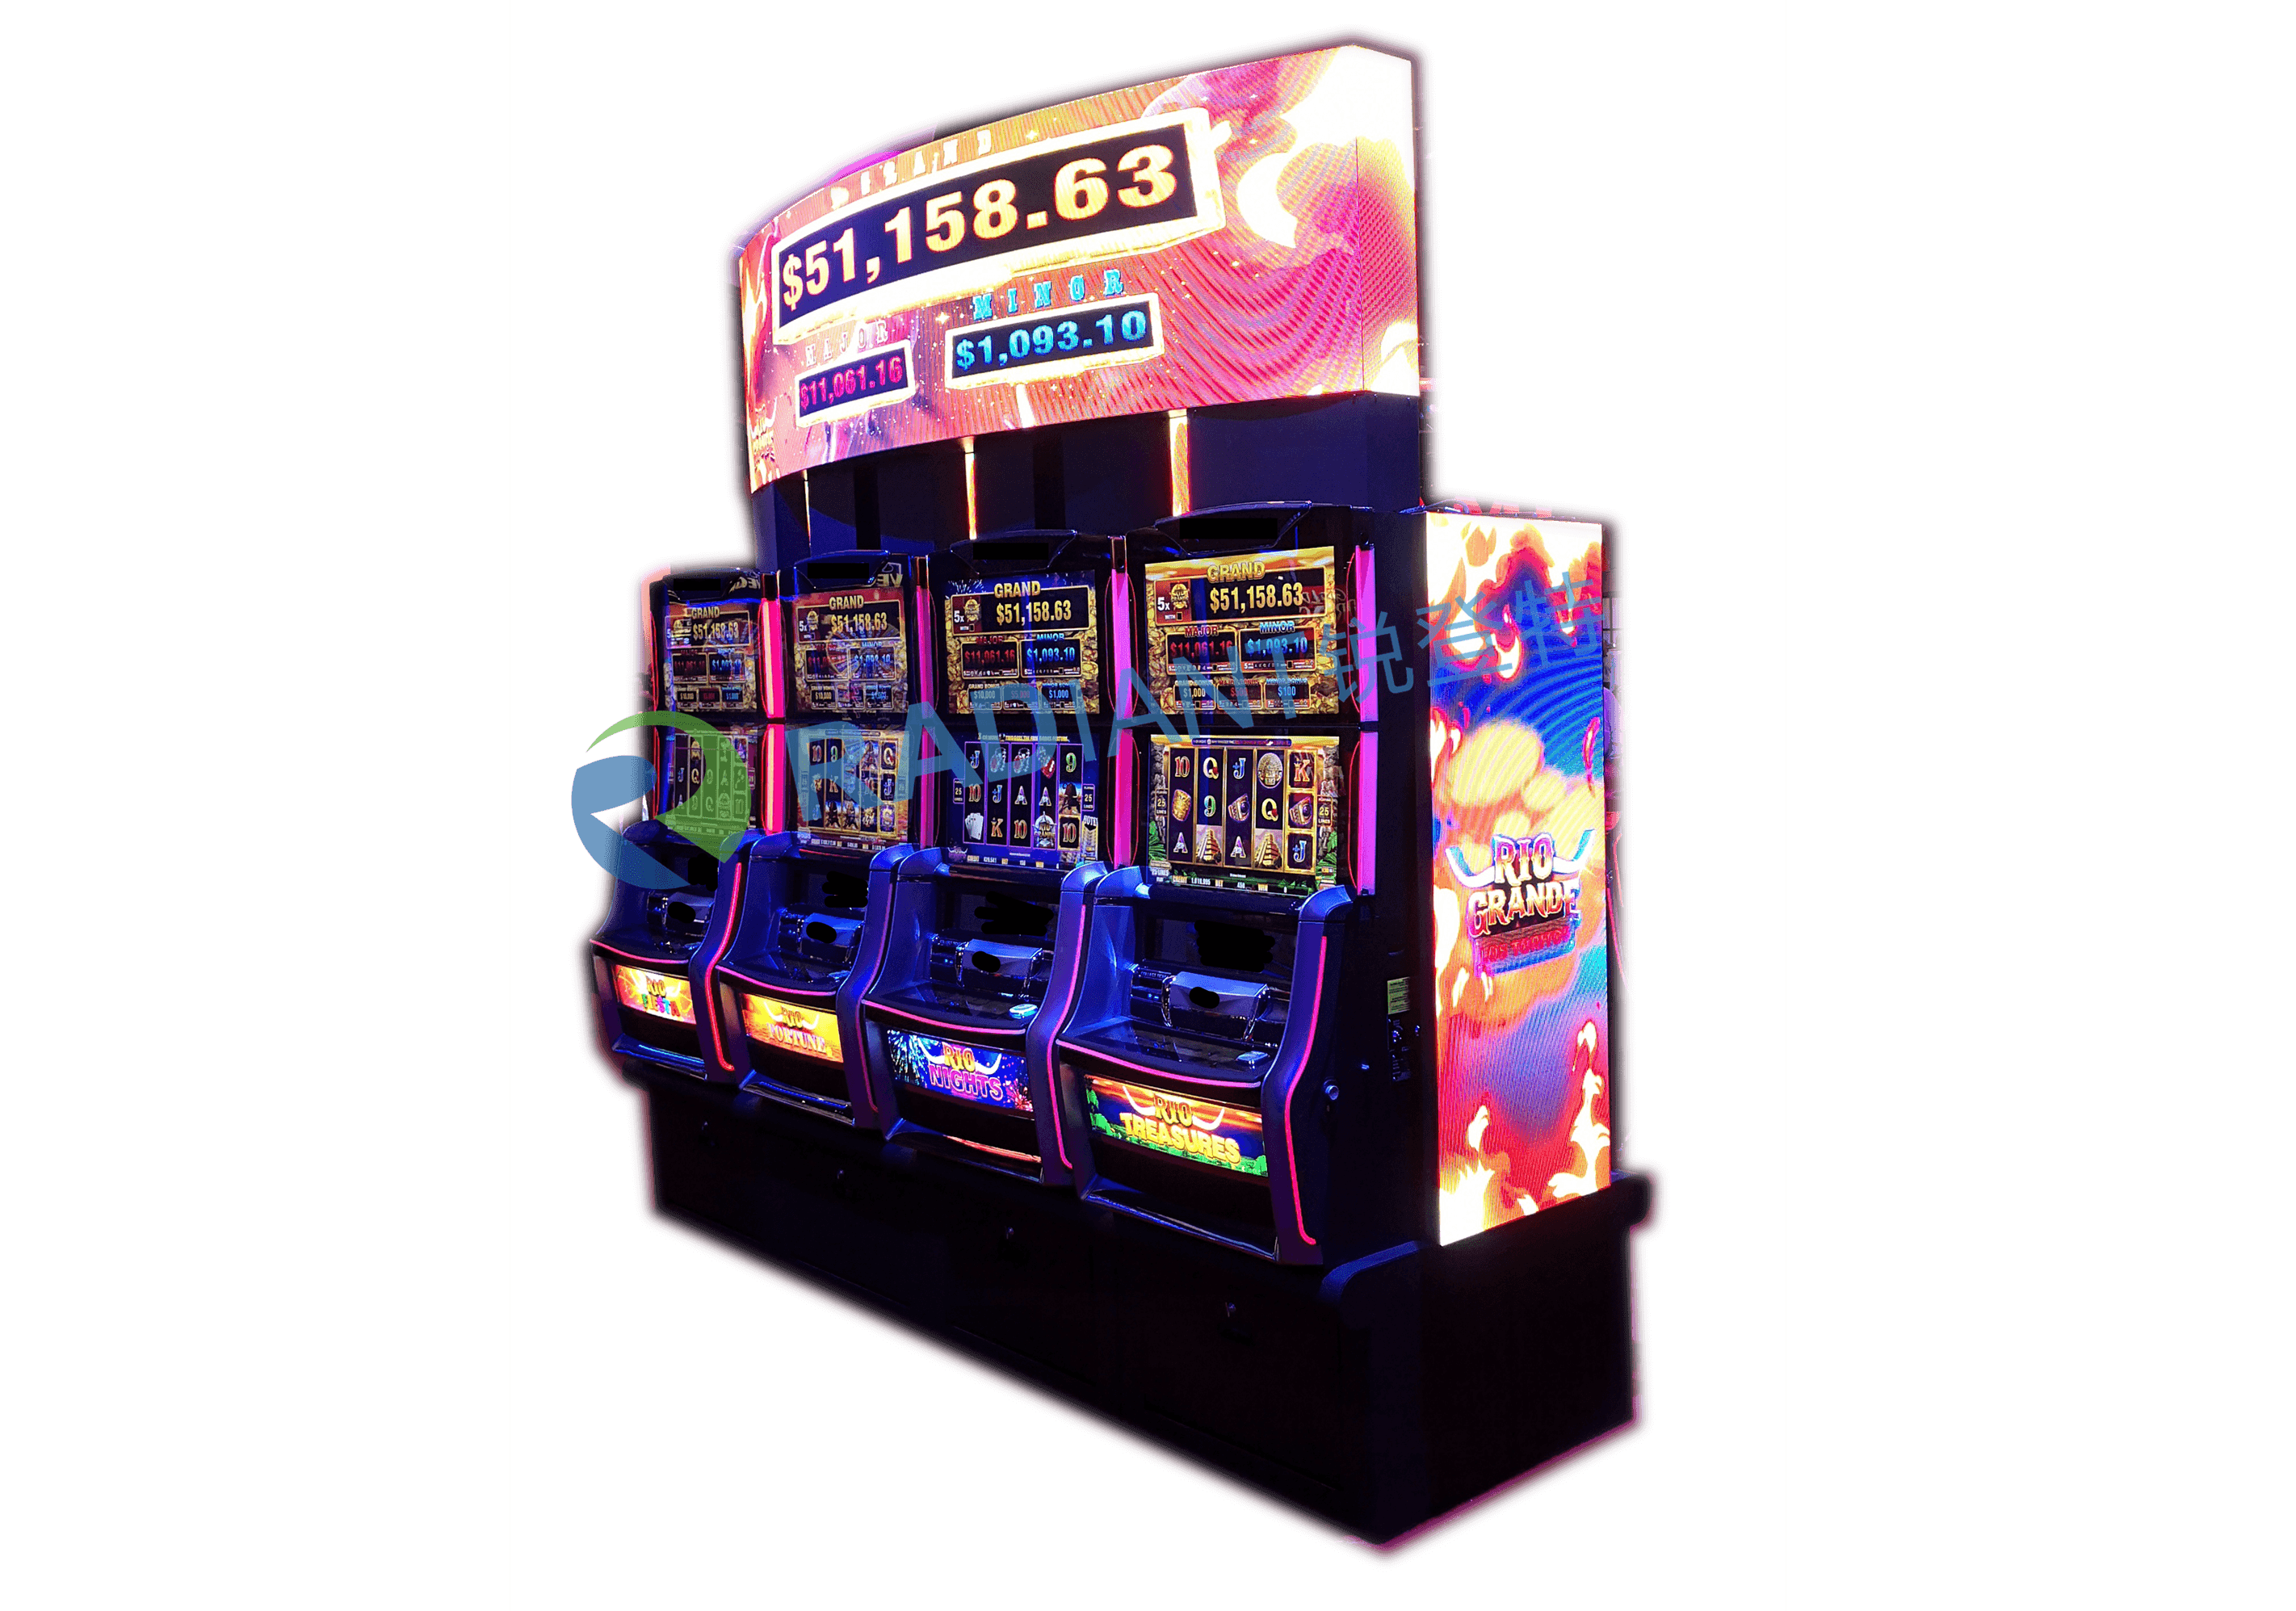 Ellipse LED Display għal Slot Machine